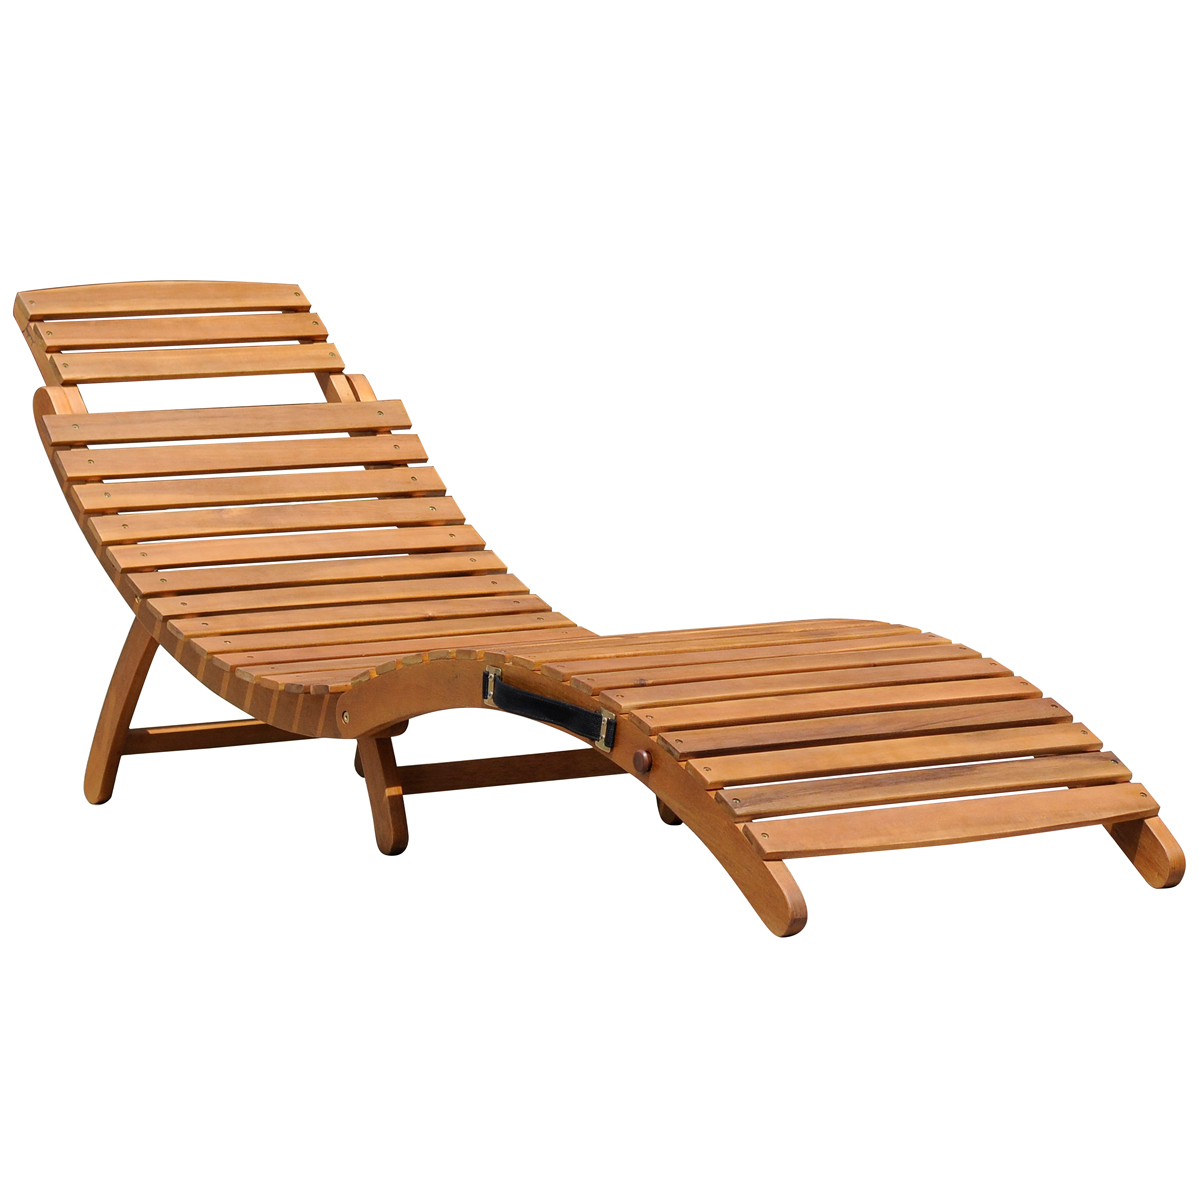 sonnenliege gartenliege liegestuhl lounger zusammenklappbar aus holz ebay. Black Bedroom Furniture Sets. Home Design Ideas